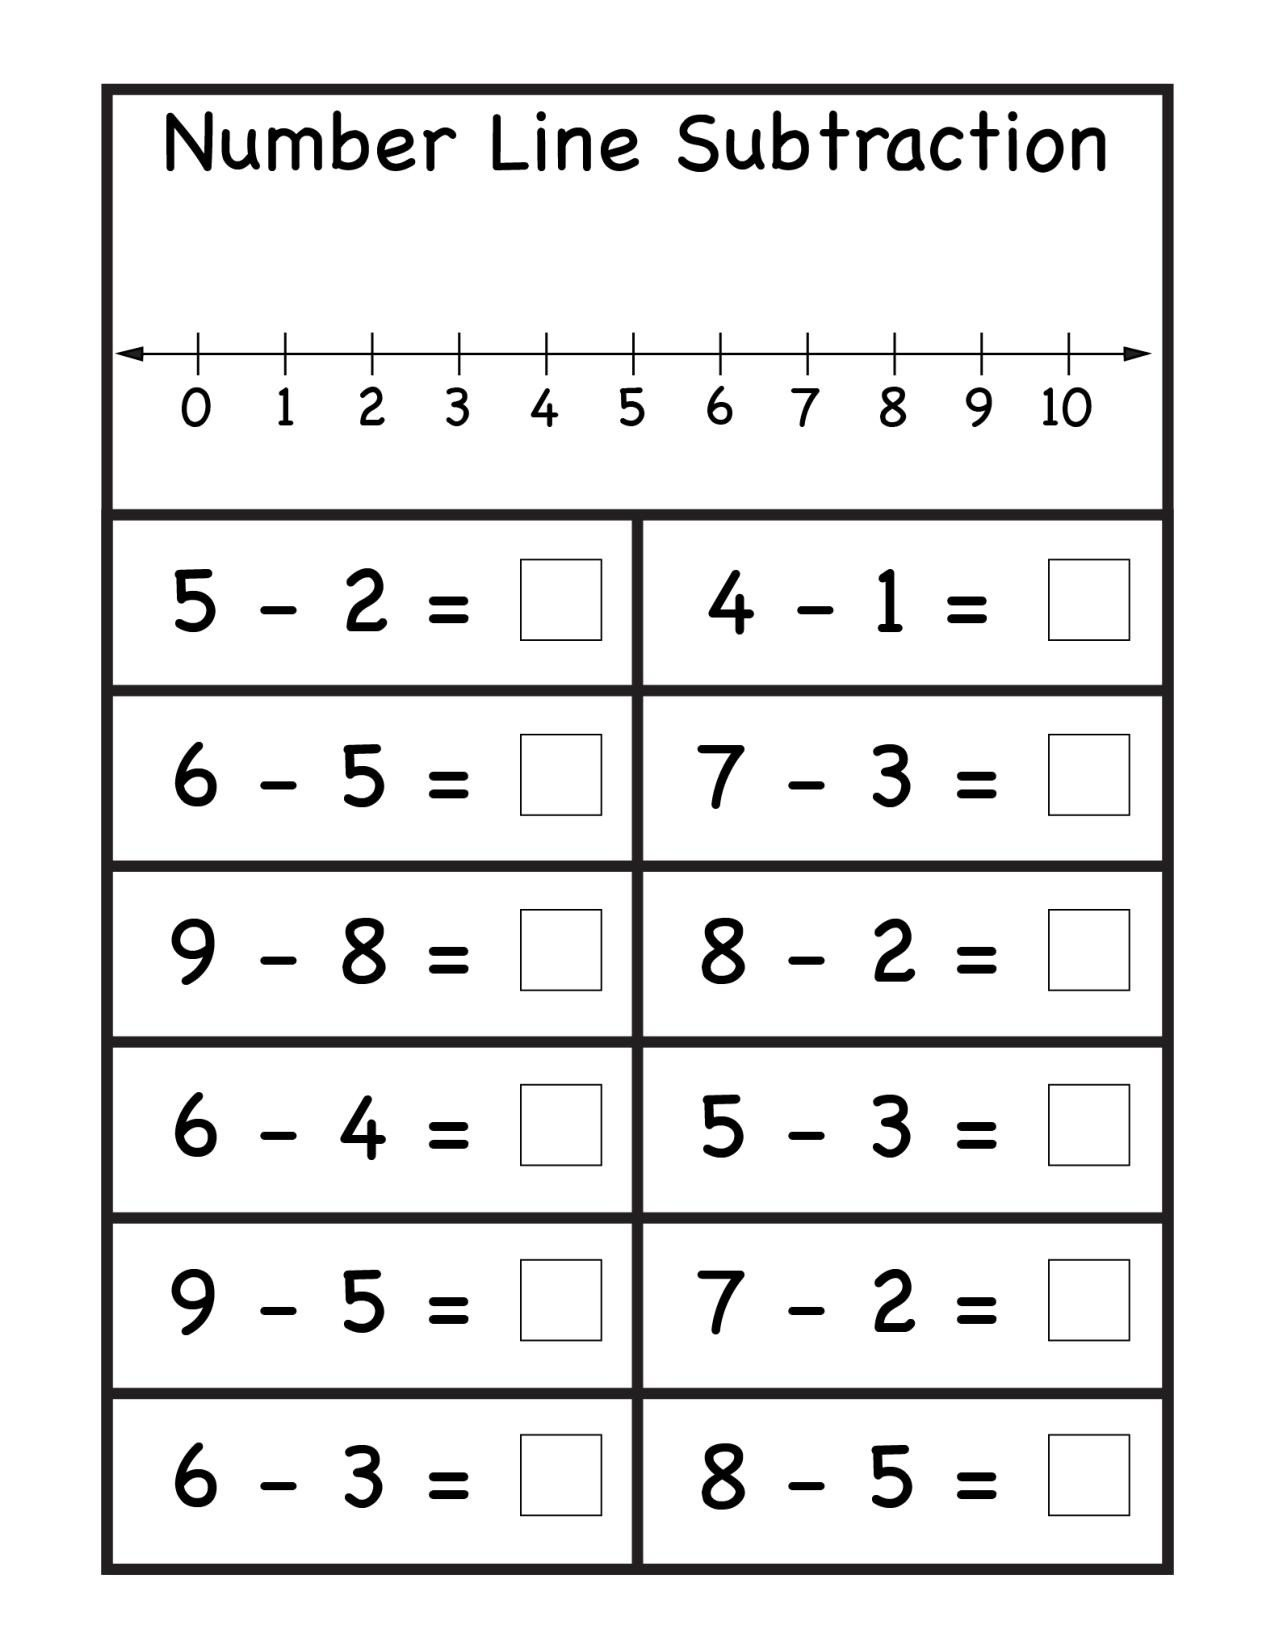 Number Line Subtraction Worksheet Subtraction Archives Page 2 Of 4